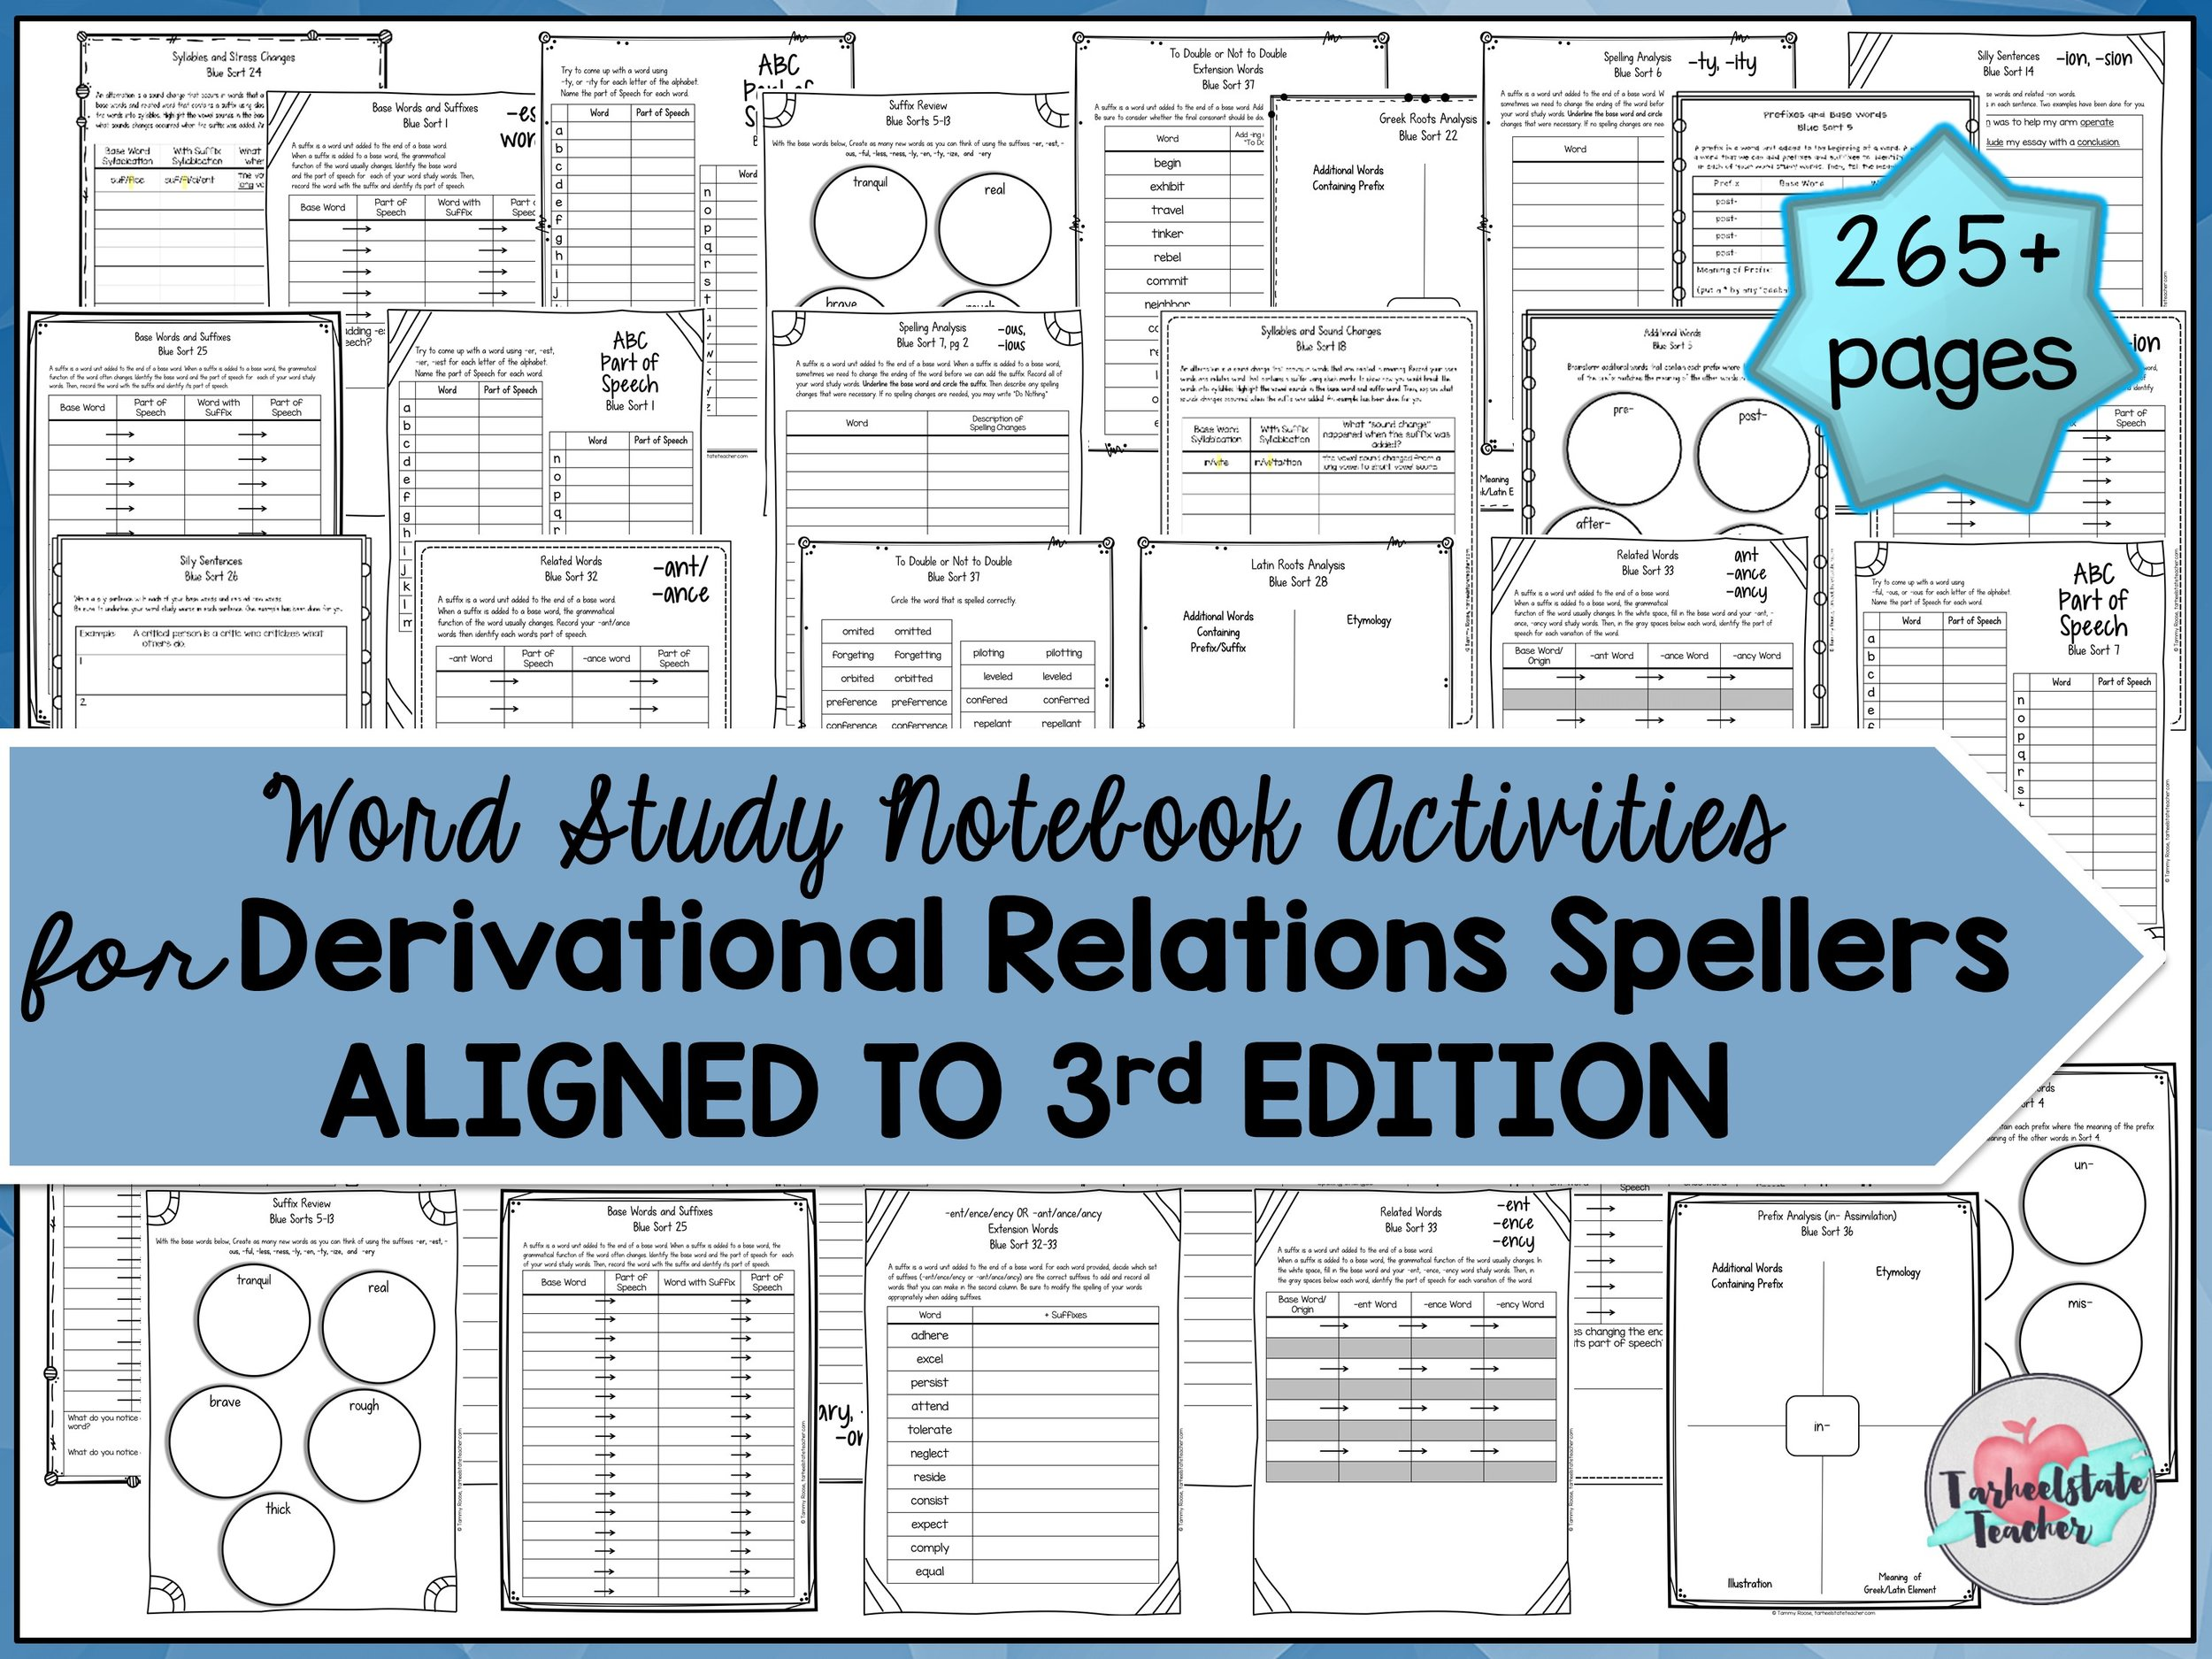 Word Study Notebook derivational relation spellers